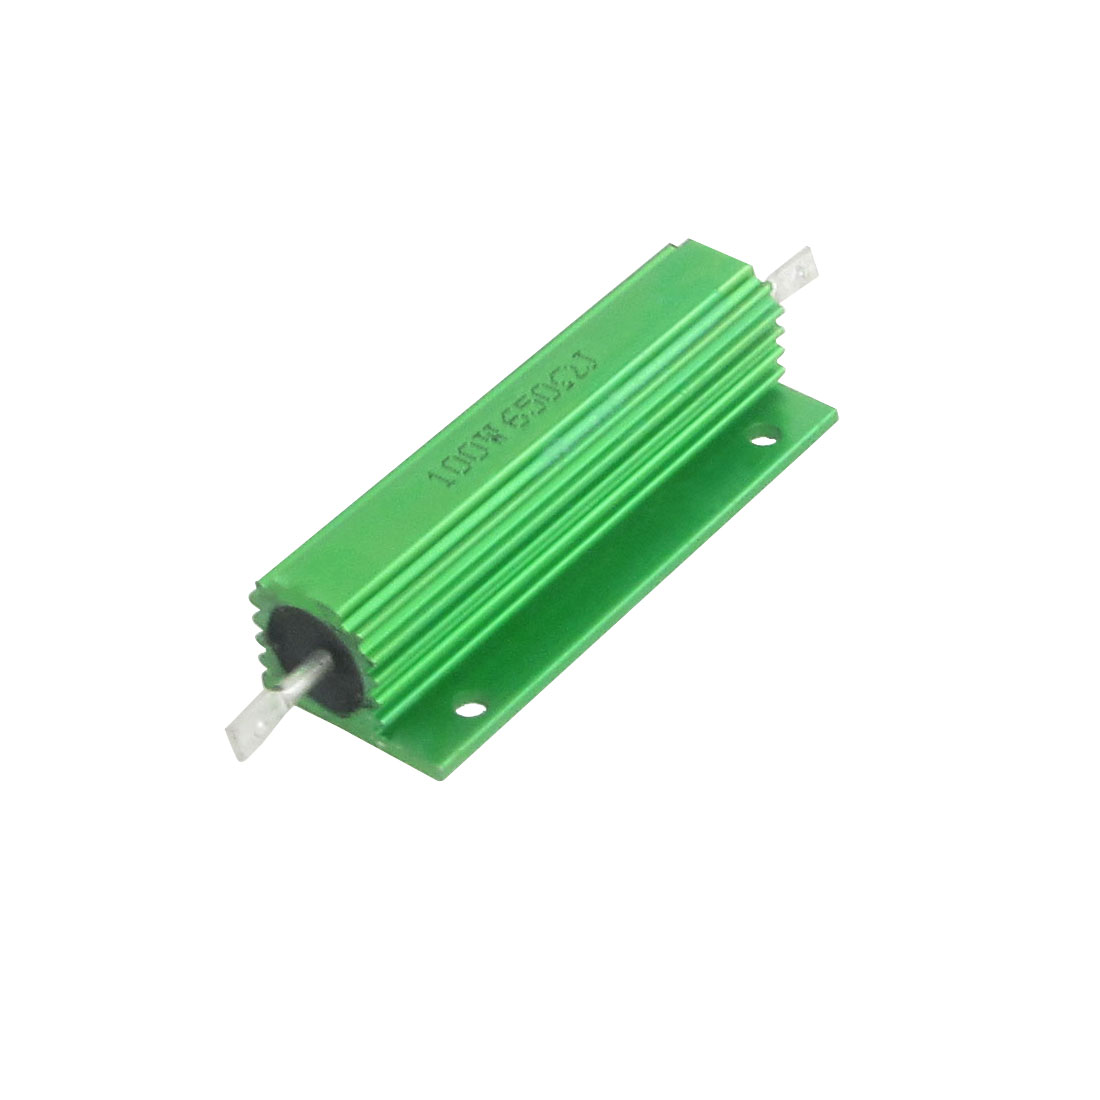 100W 650 Ohm Screw Tap Mounted Aluminum Housed Wirewound Resistors 2 Pcs